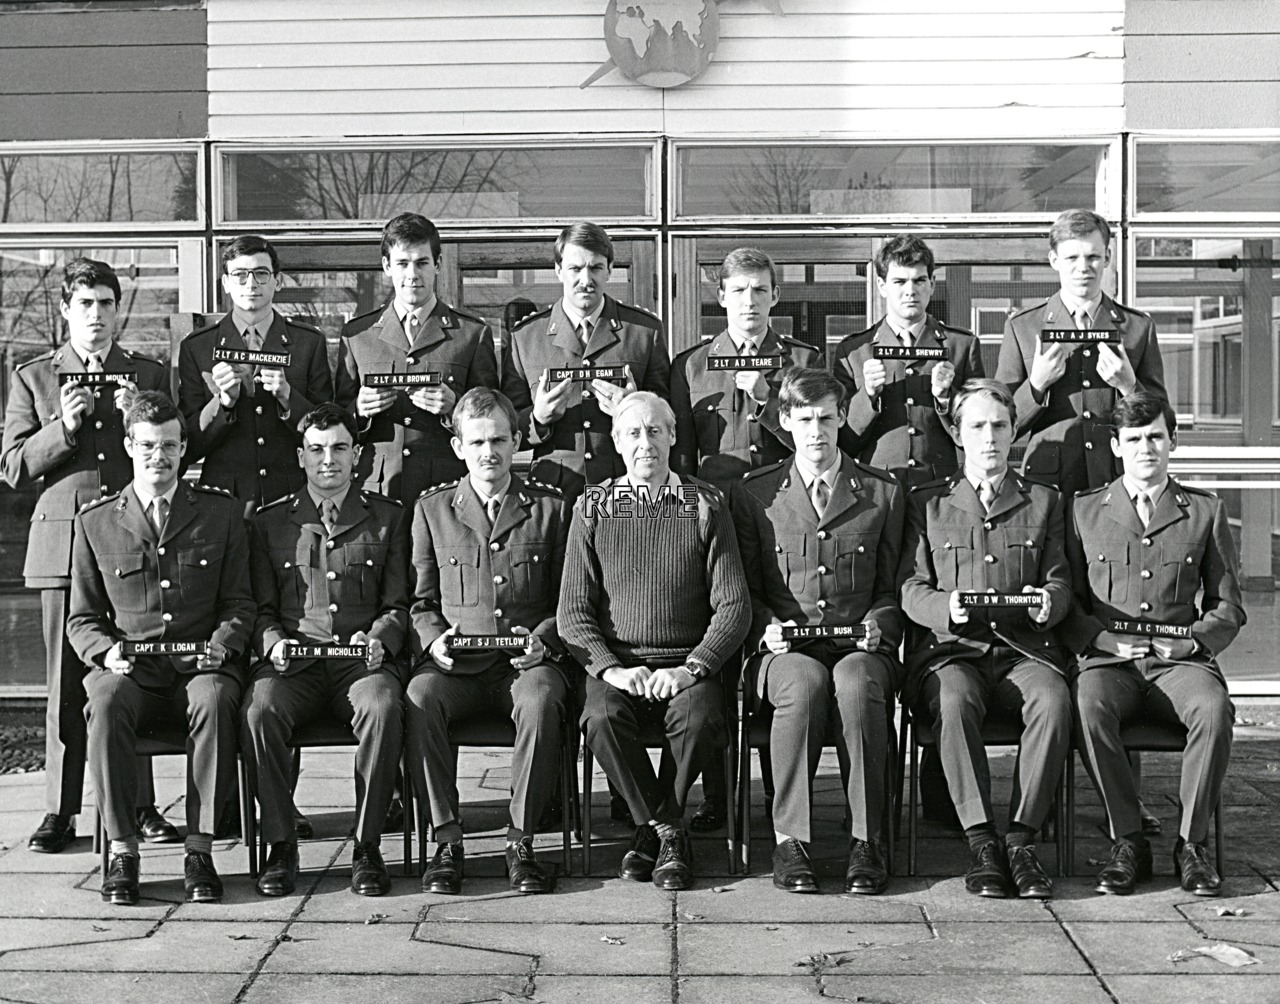 No 76 Regular Young Officers' Course, REME Officers' School, 1981